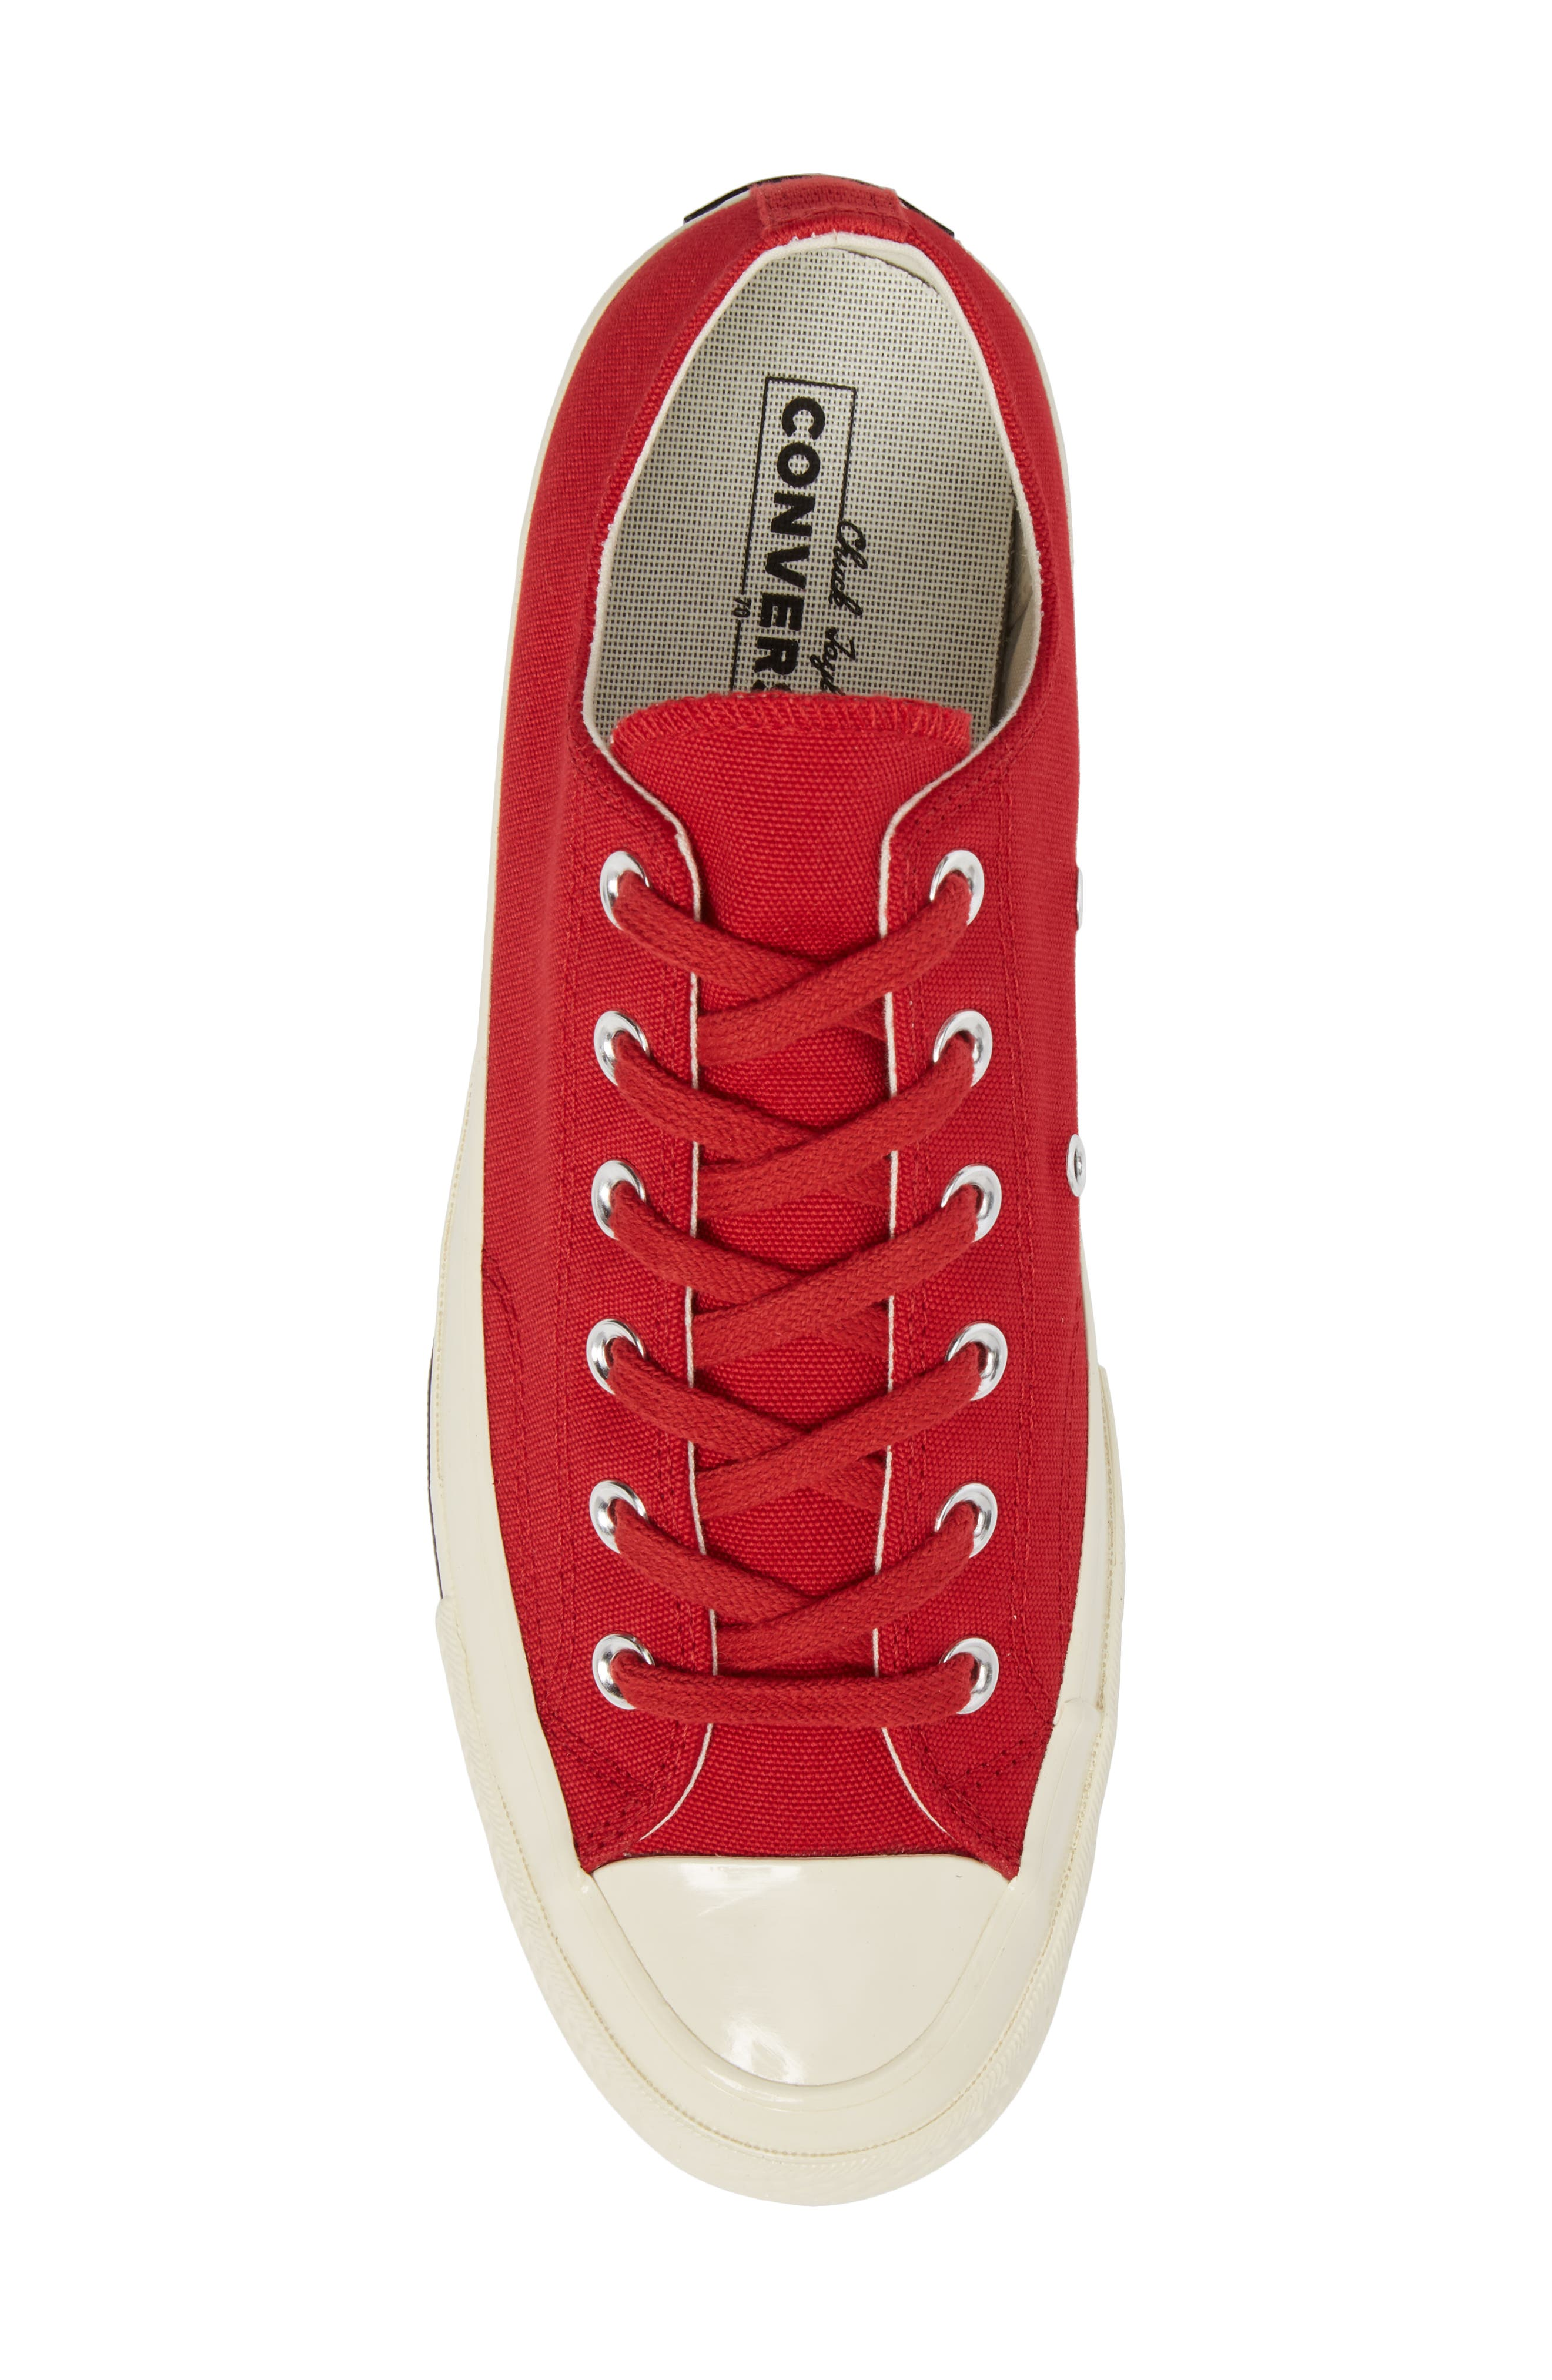 Chuck Taylor<sup>®</sup> All Star<sup>®</sup> '70s Heritage Low Top Sneaker,                             Alternate thumbnail 5, color,                             Gym Red